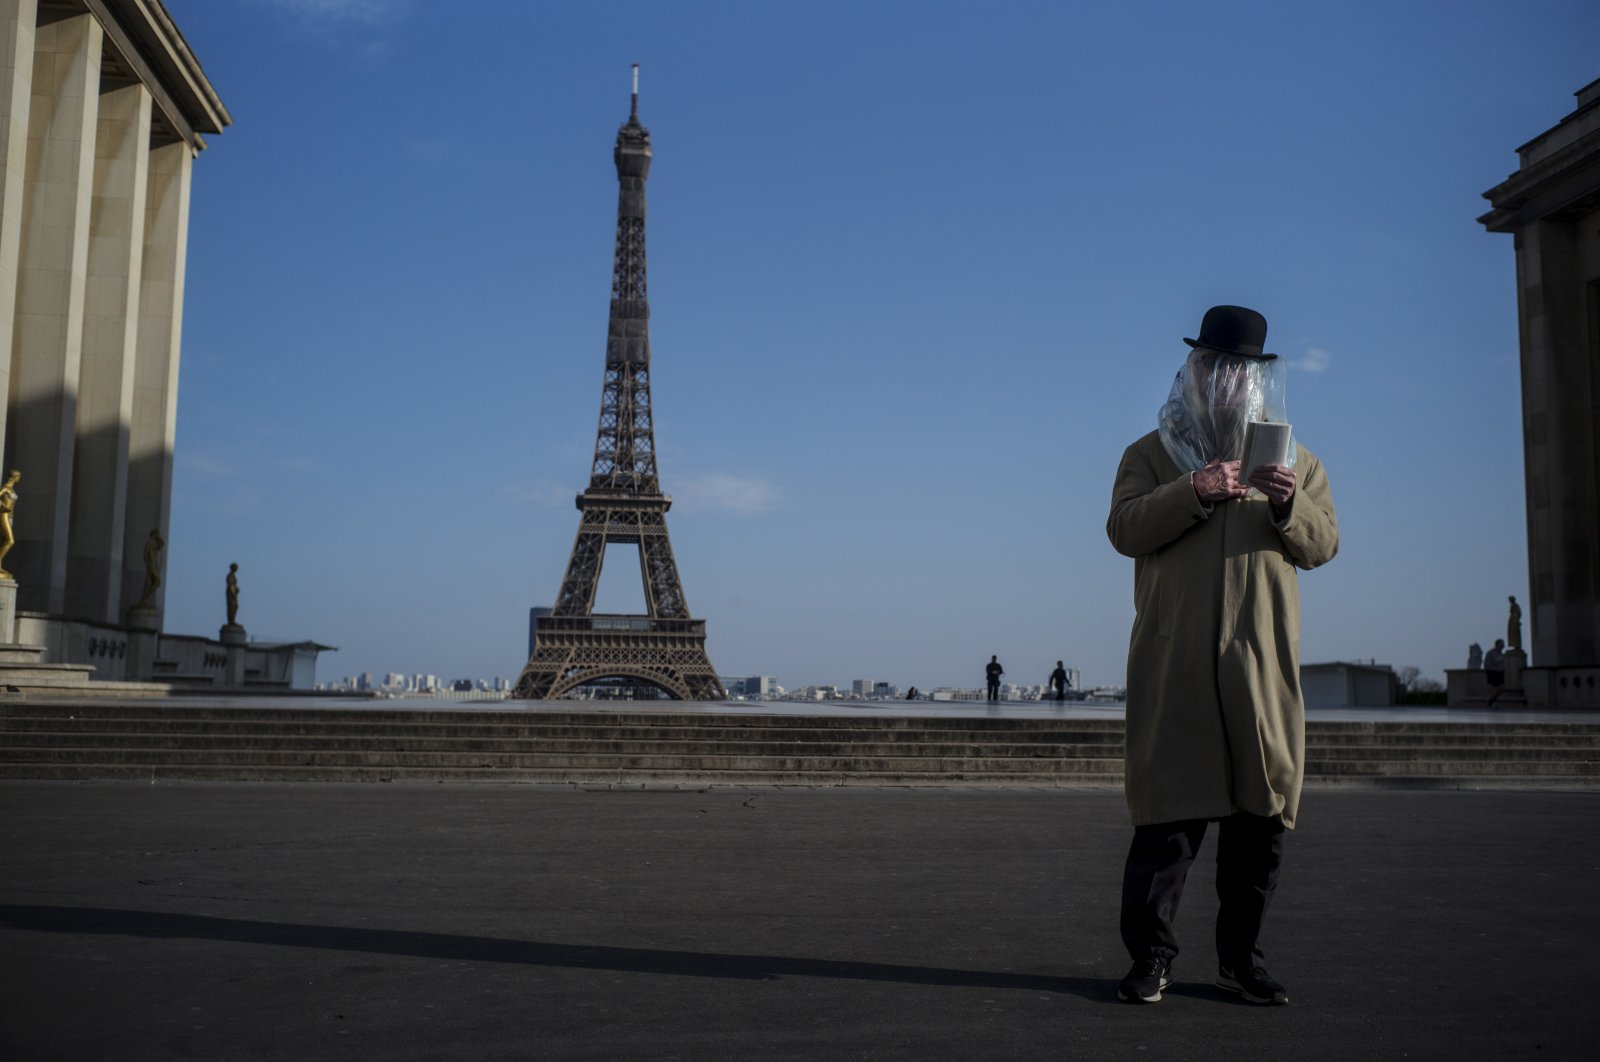 A man has his head covered with a plastic bag for protection reads a book in front of the Eiffel tower in Paris, France, 22 March 2020. (EPA Photo)